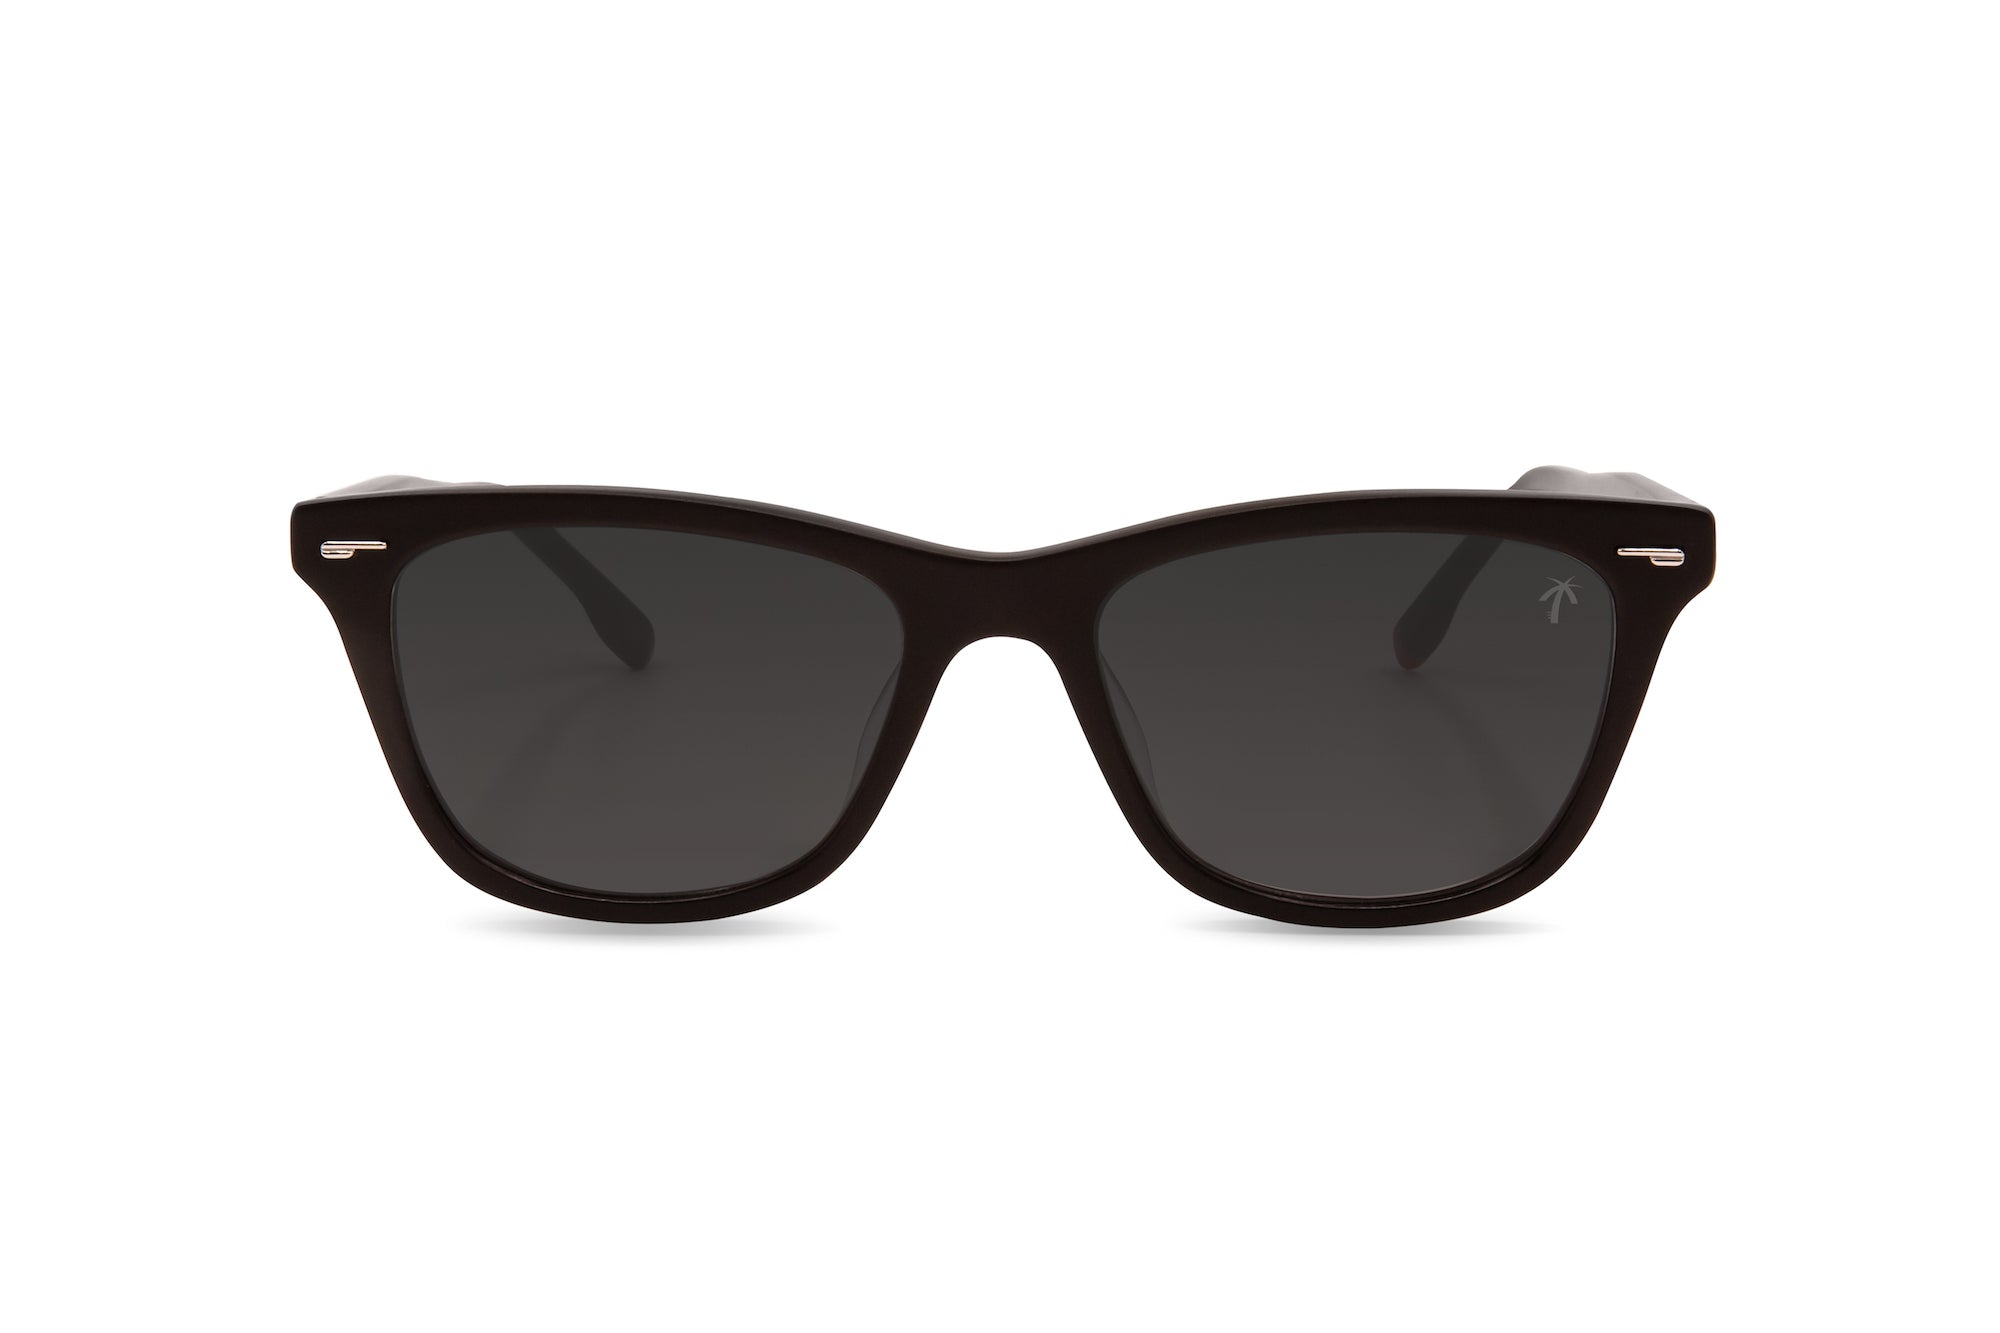 Overland in Black - Peppertint - Designer sunglasses